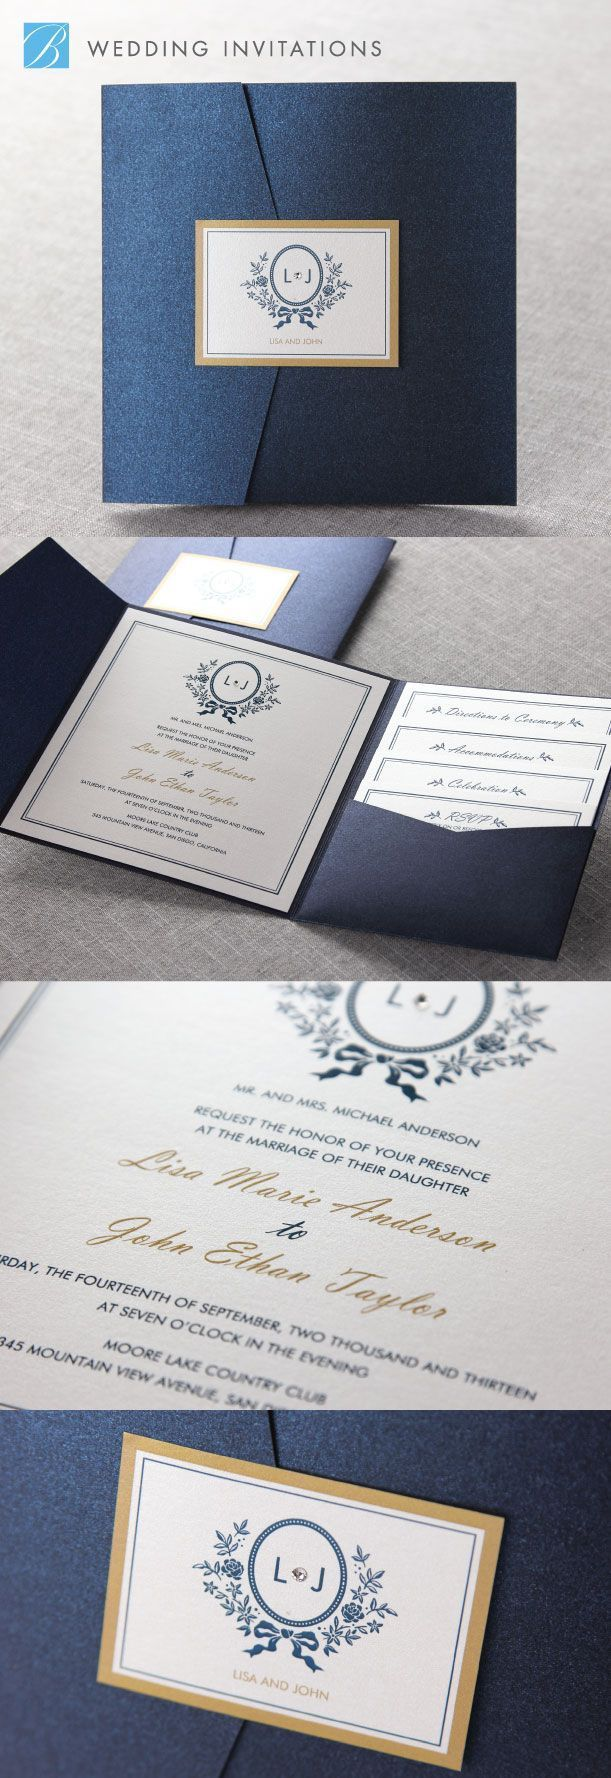 954 Best Wedding Invitations Images On Pinterest Invitation Cards